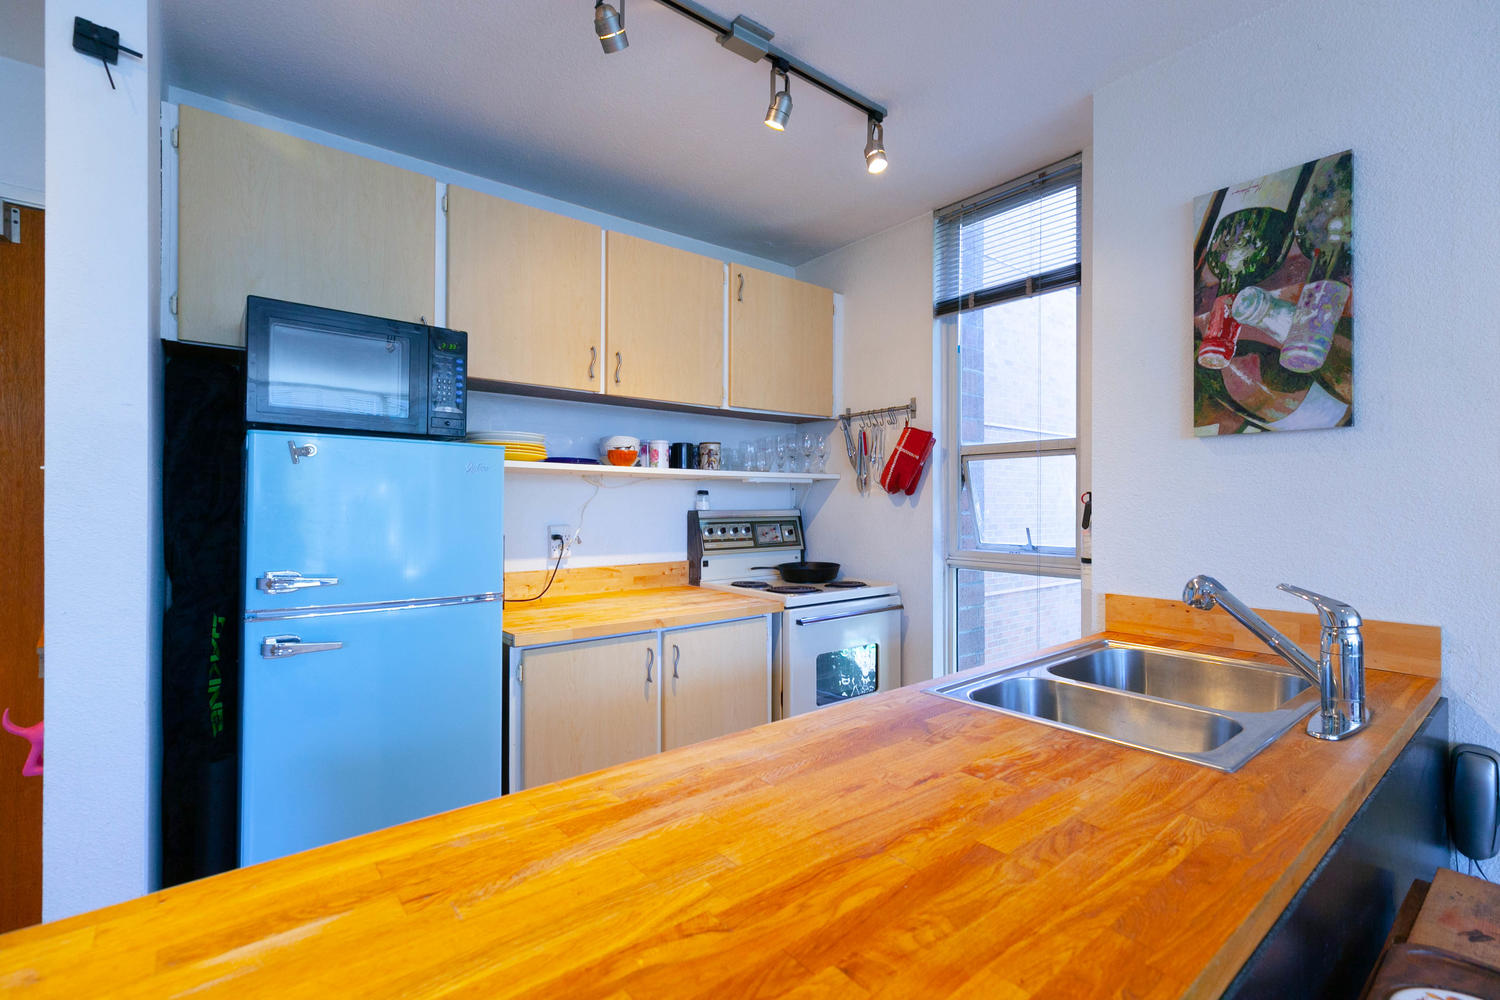 401 - 1333 Hornby Street, Vancouver, British Columbia, Canada V6Z 2C1, 1 Bedroom Bedrooms, 4 Rooms Rooms,1 BathroomBathrooms,Condo,For Sale,Hornby,4,380600602009423